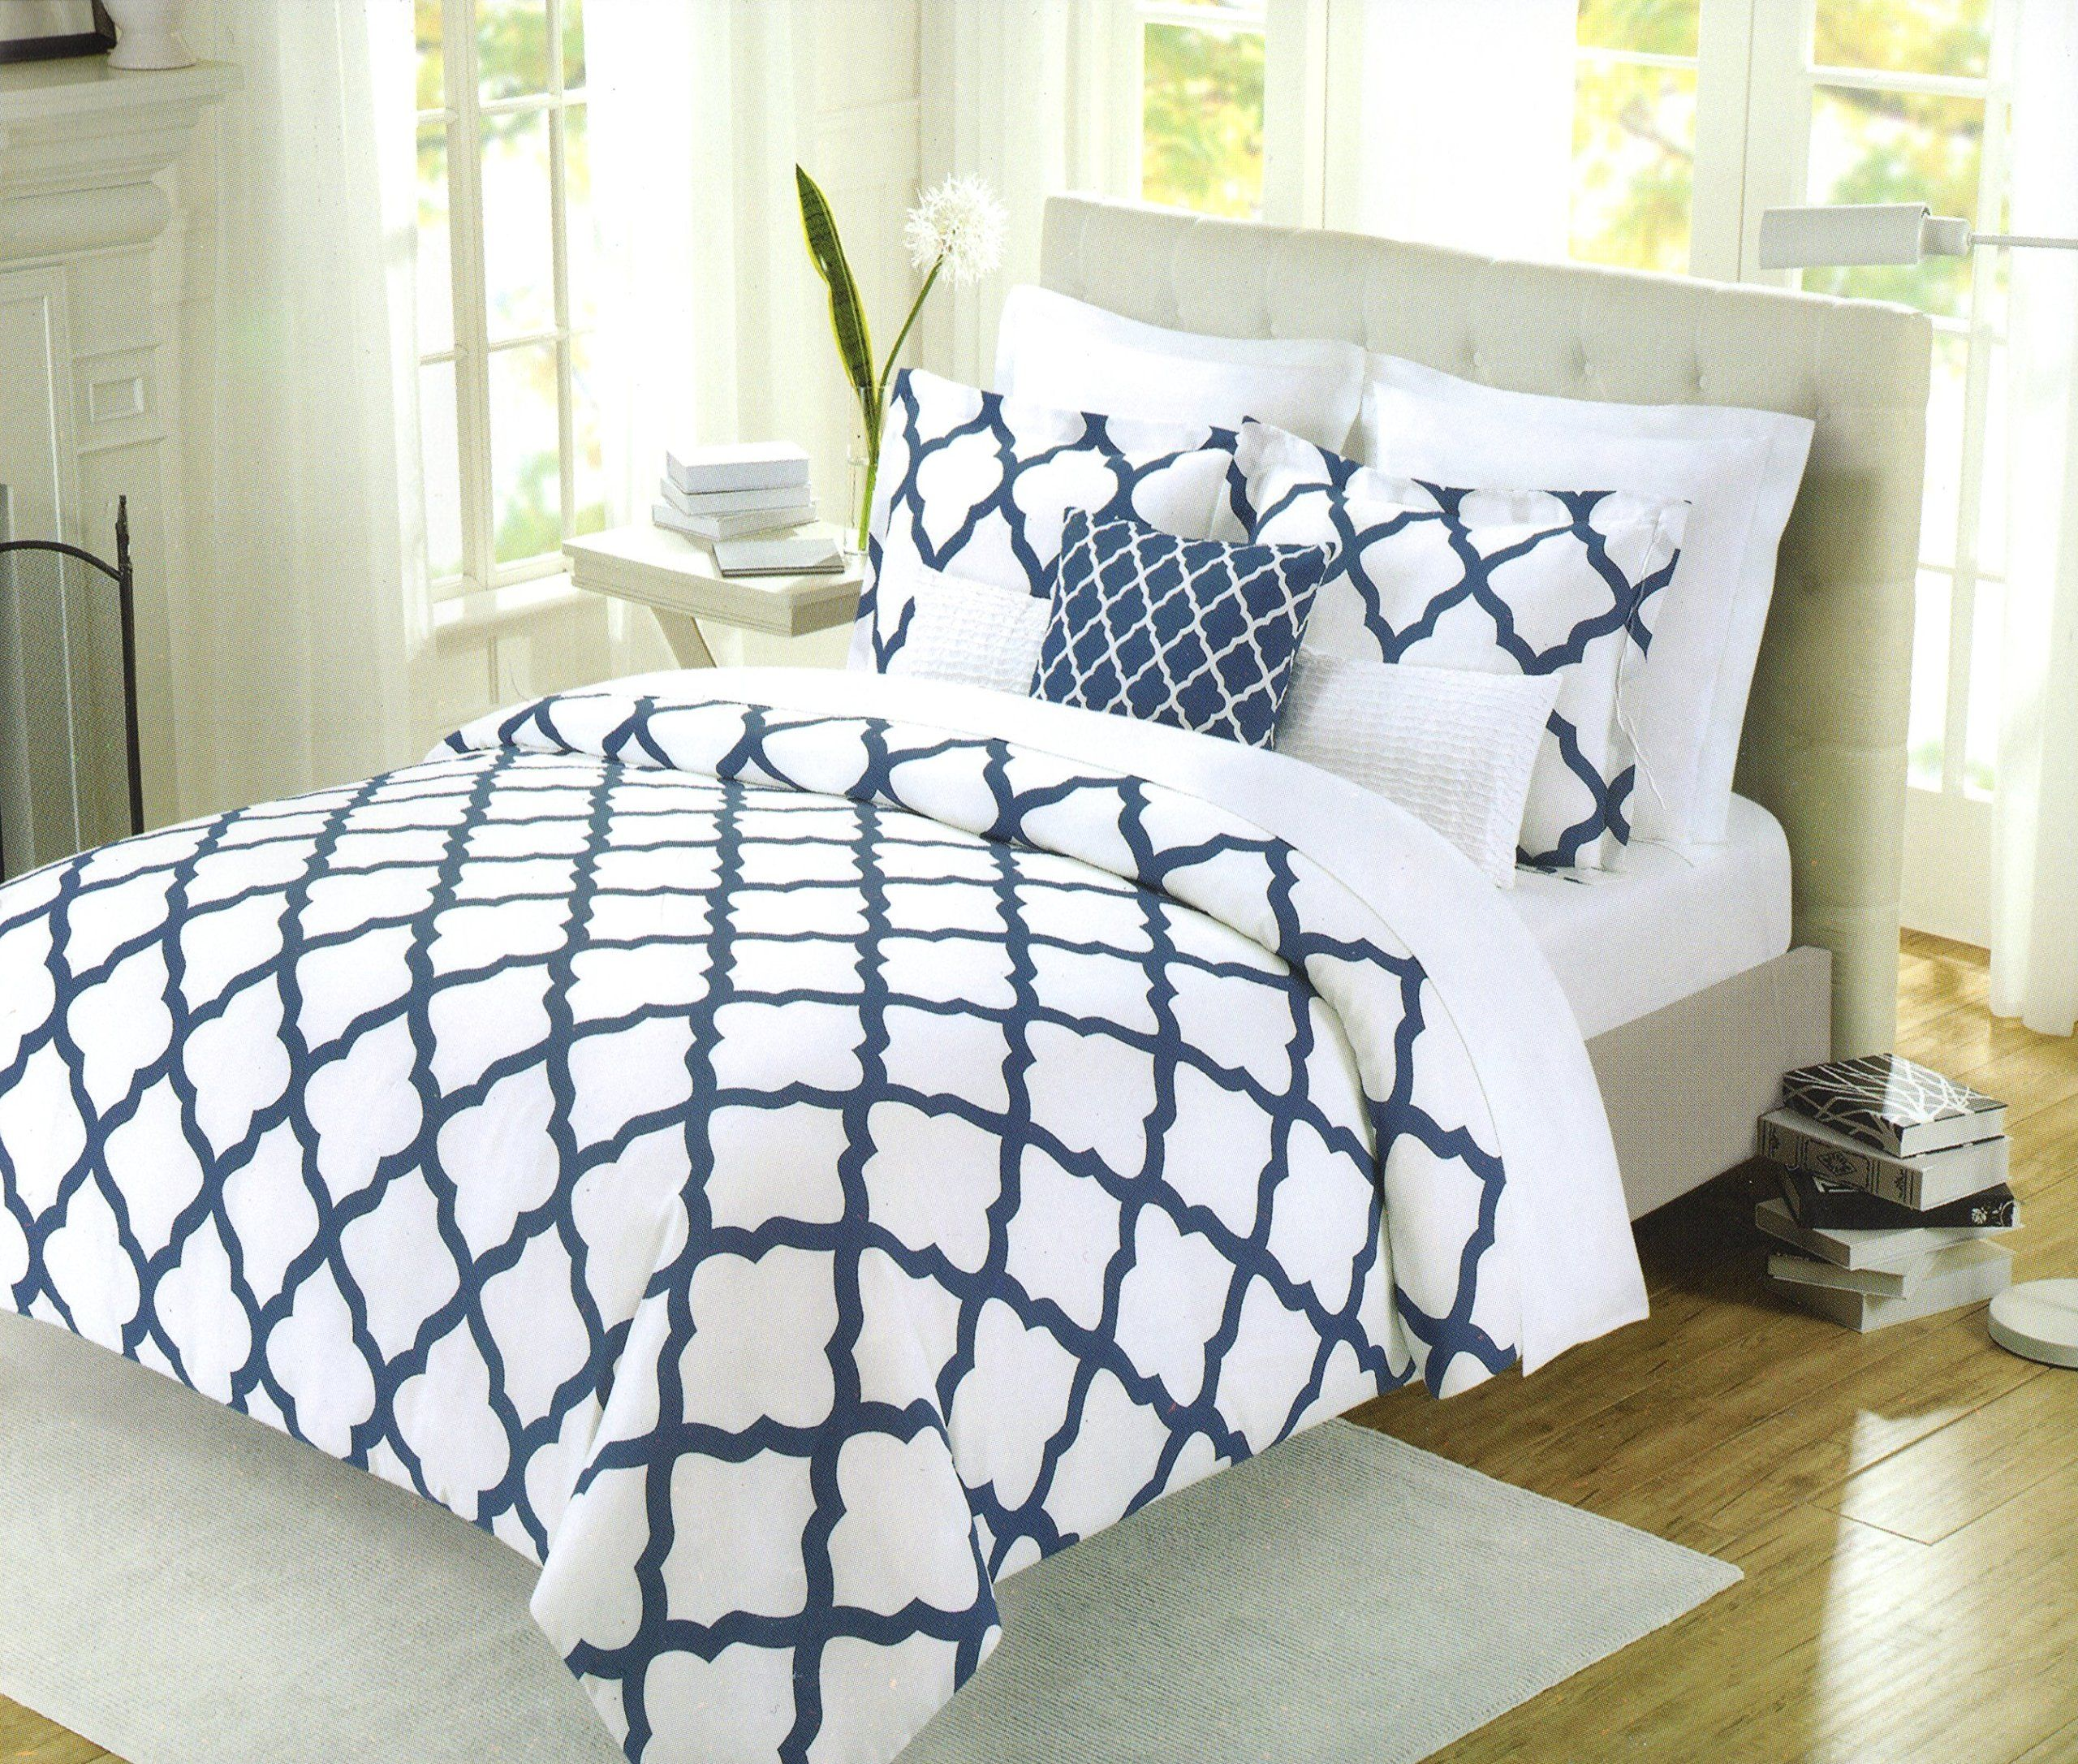 shipping free count king bedding piece percale product white duvet cover set cotton thread today oversize bath overstock